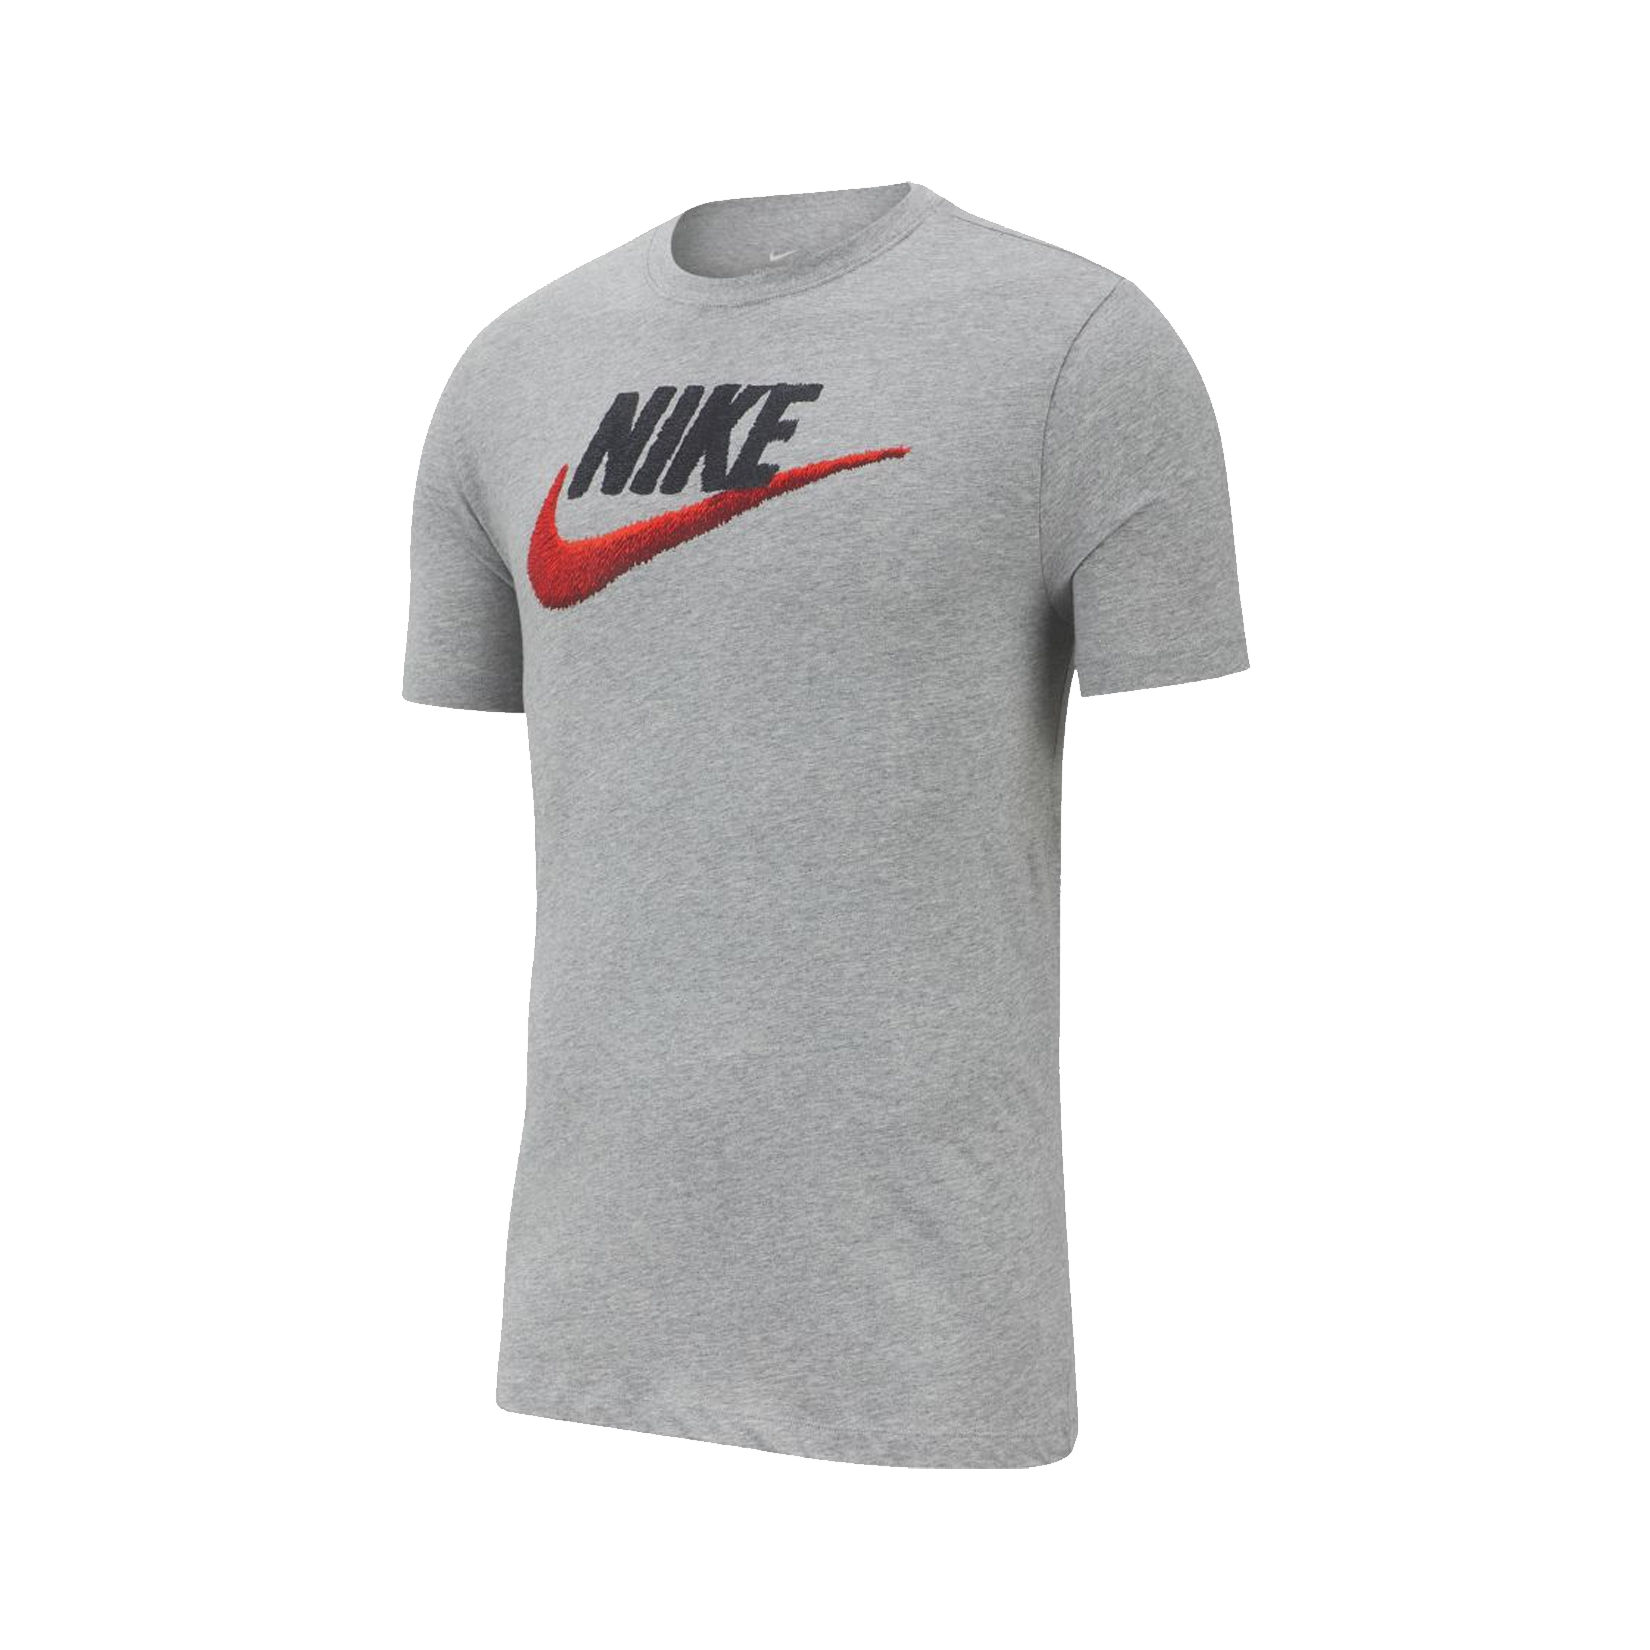 Nike Sportswear Brand Mark T-Shirt Grey